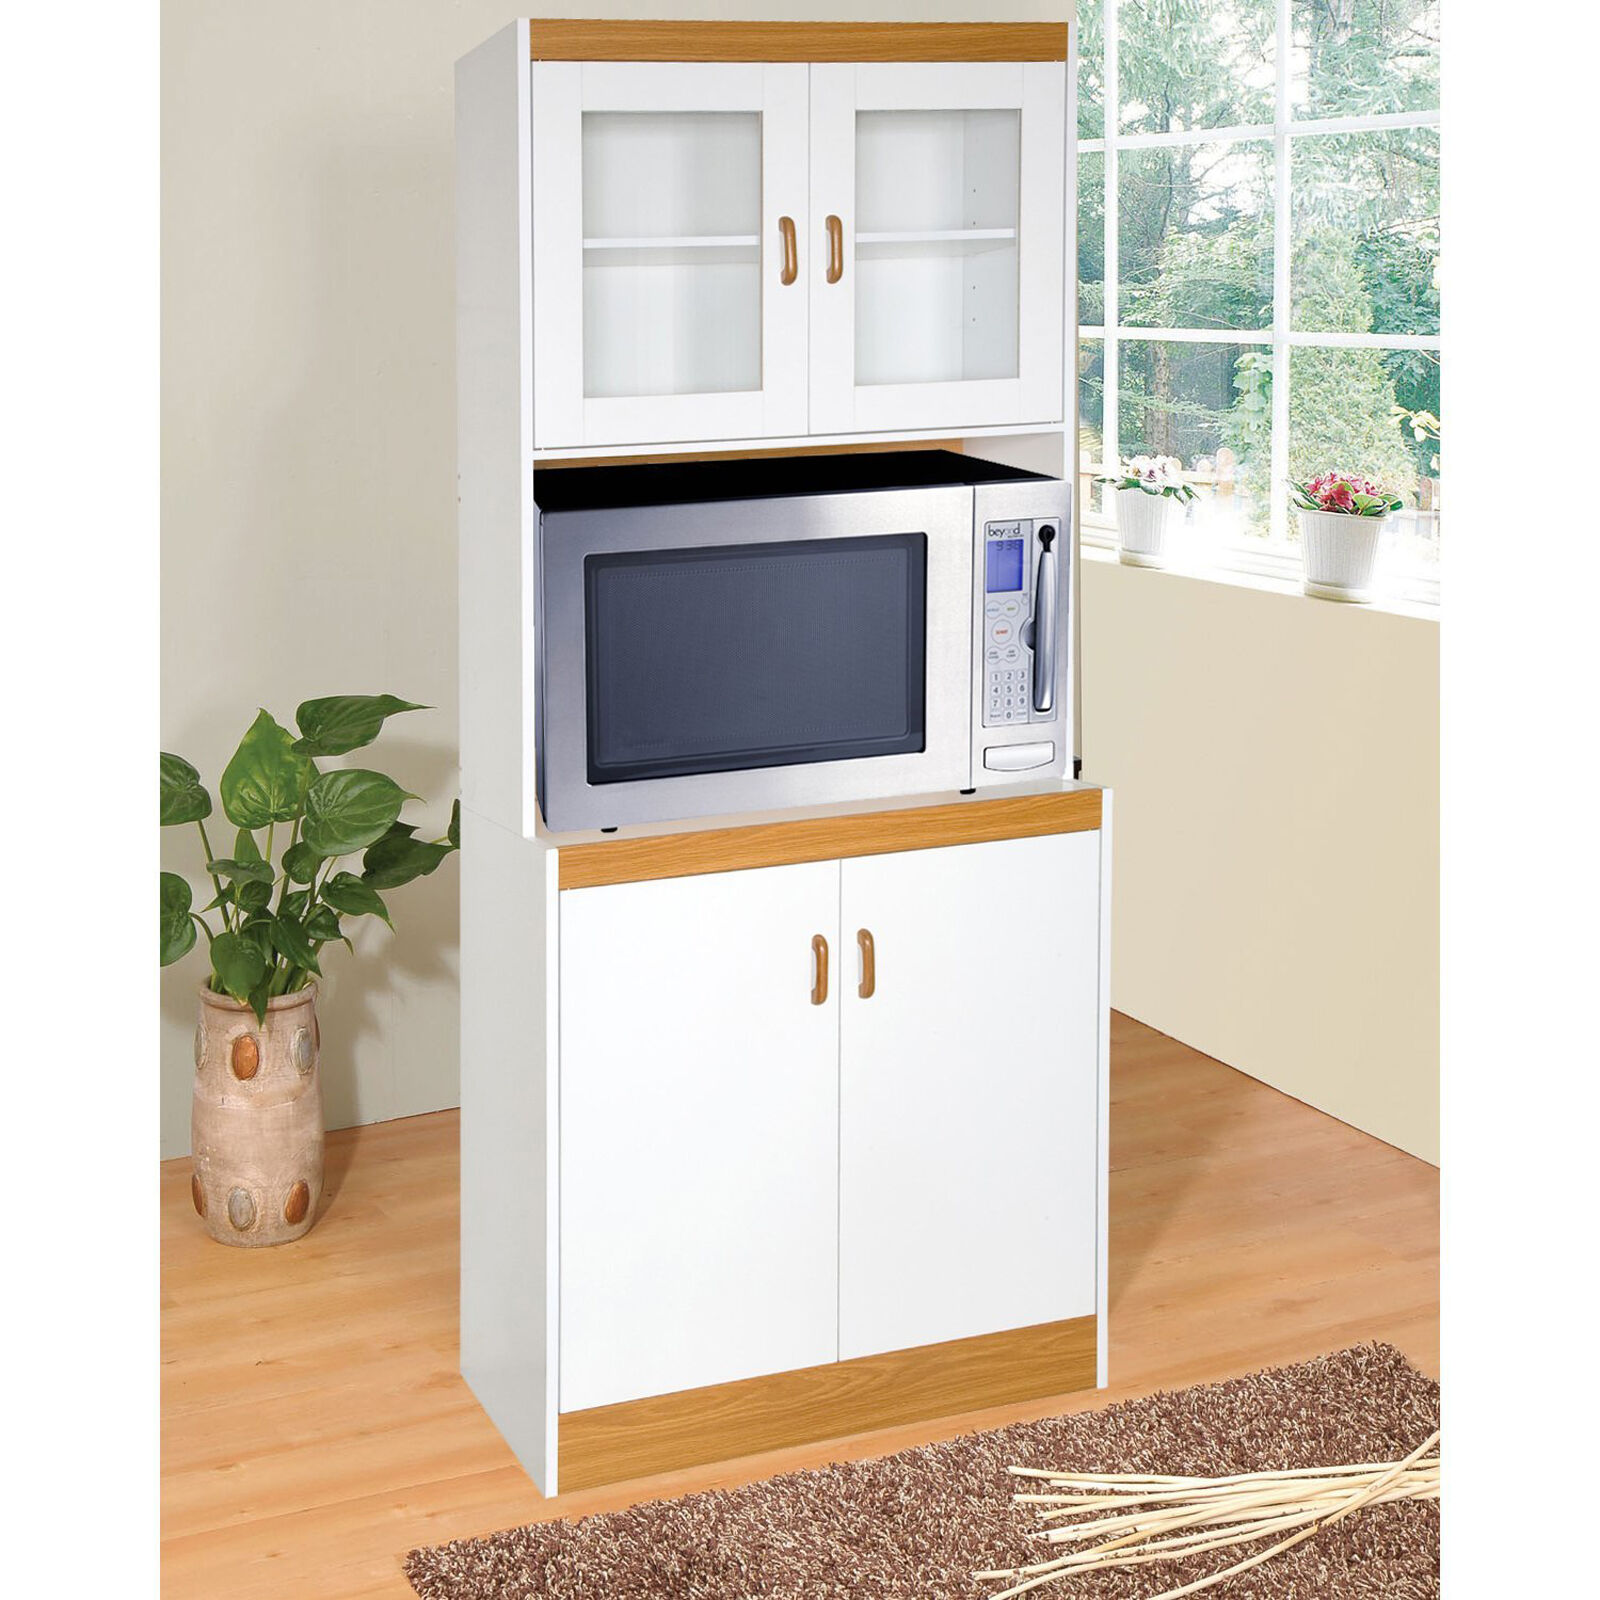 Tall Microwave Cart White Kitchen Stand Freestanding Storage Cabinet Glass Doors